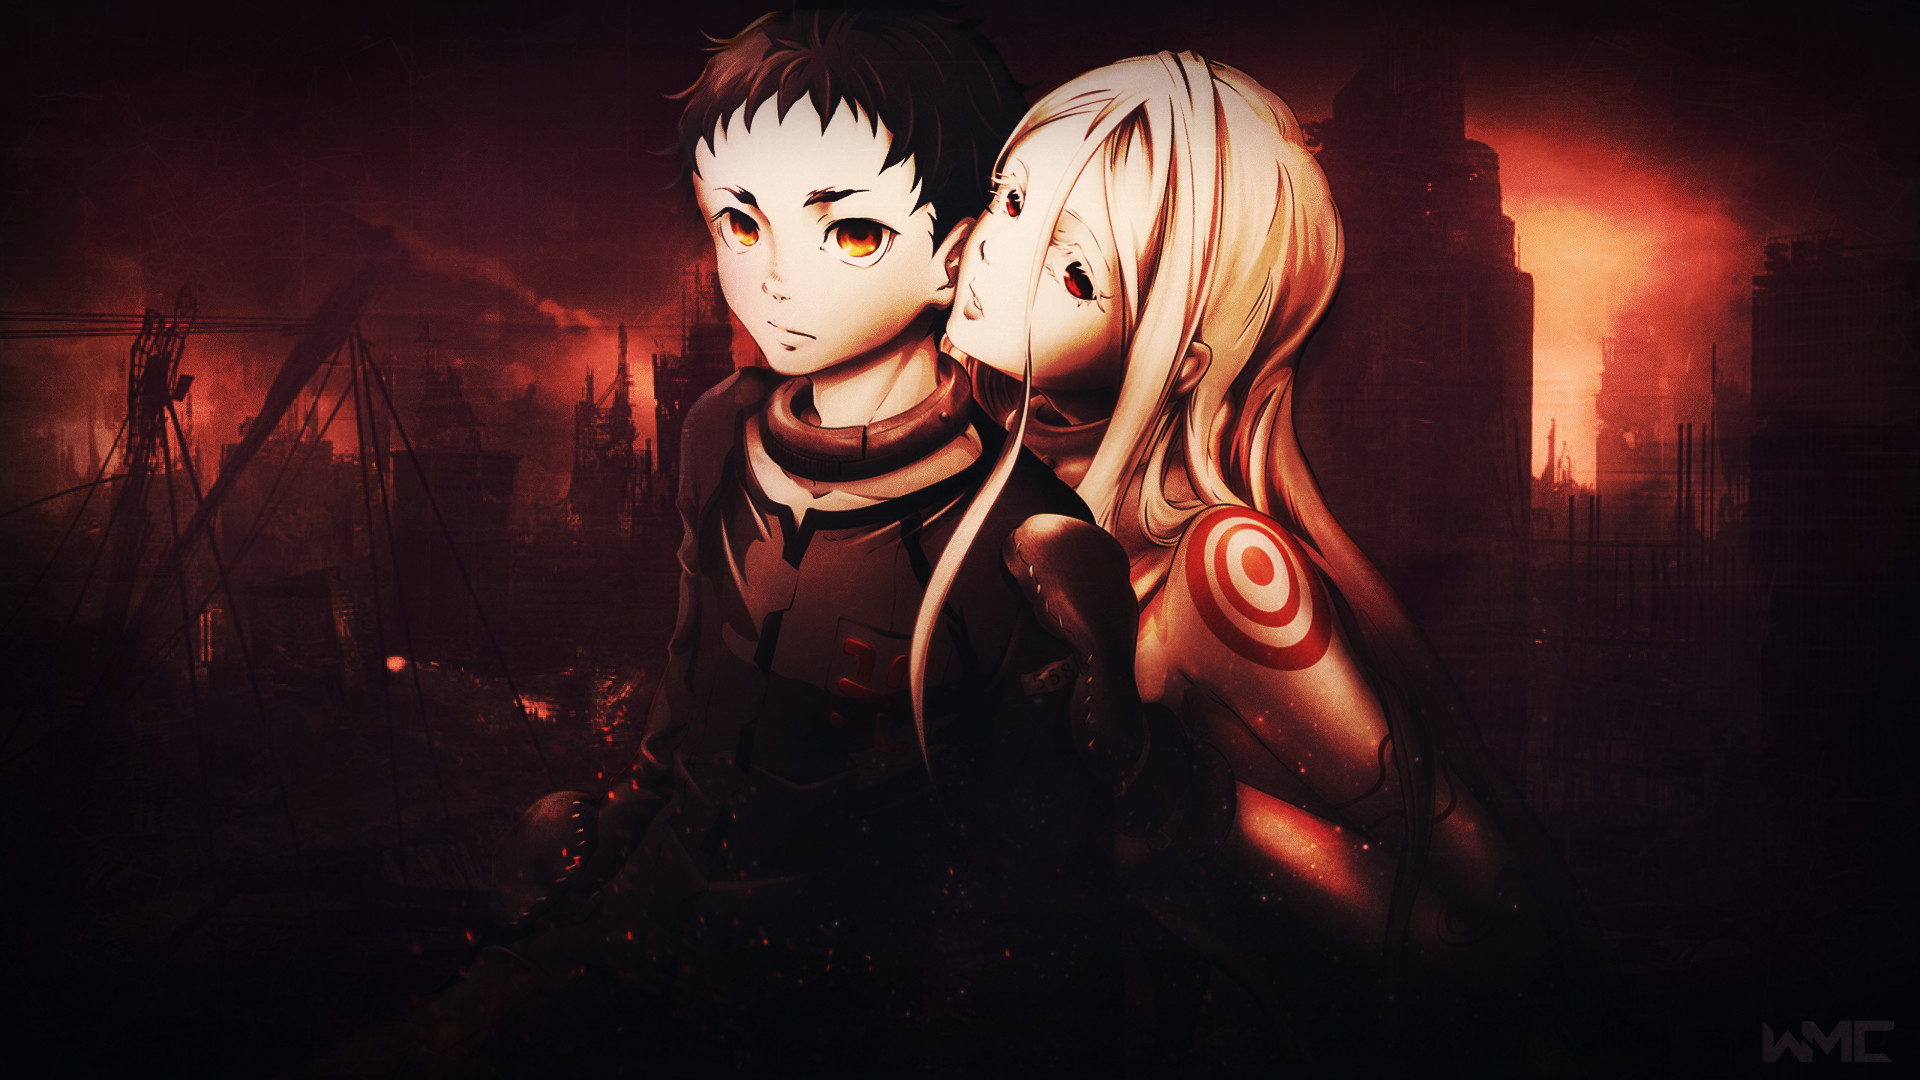 1920x1080 Deadman Wonderland Wallpaper by WhosMrChicken Deadman Wonderland Wallpaper  by WhosMrChicken